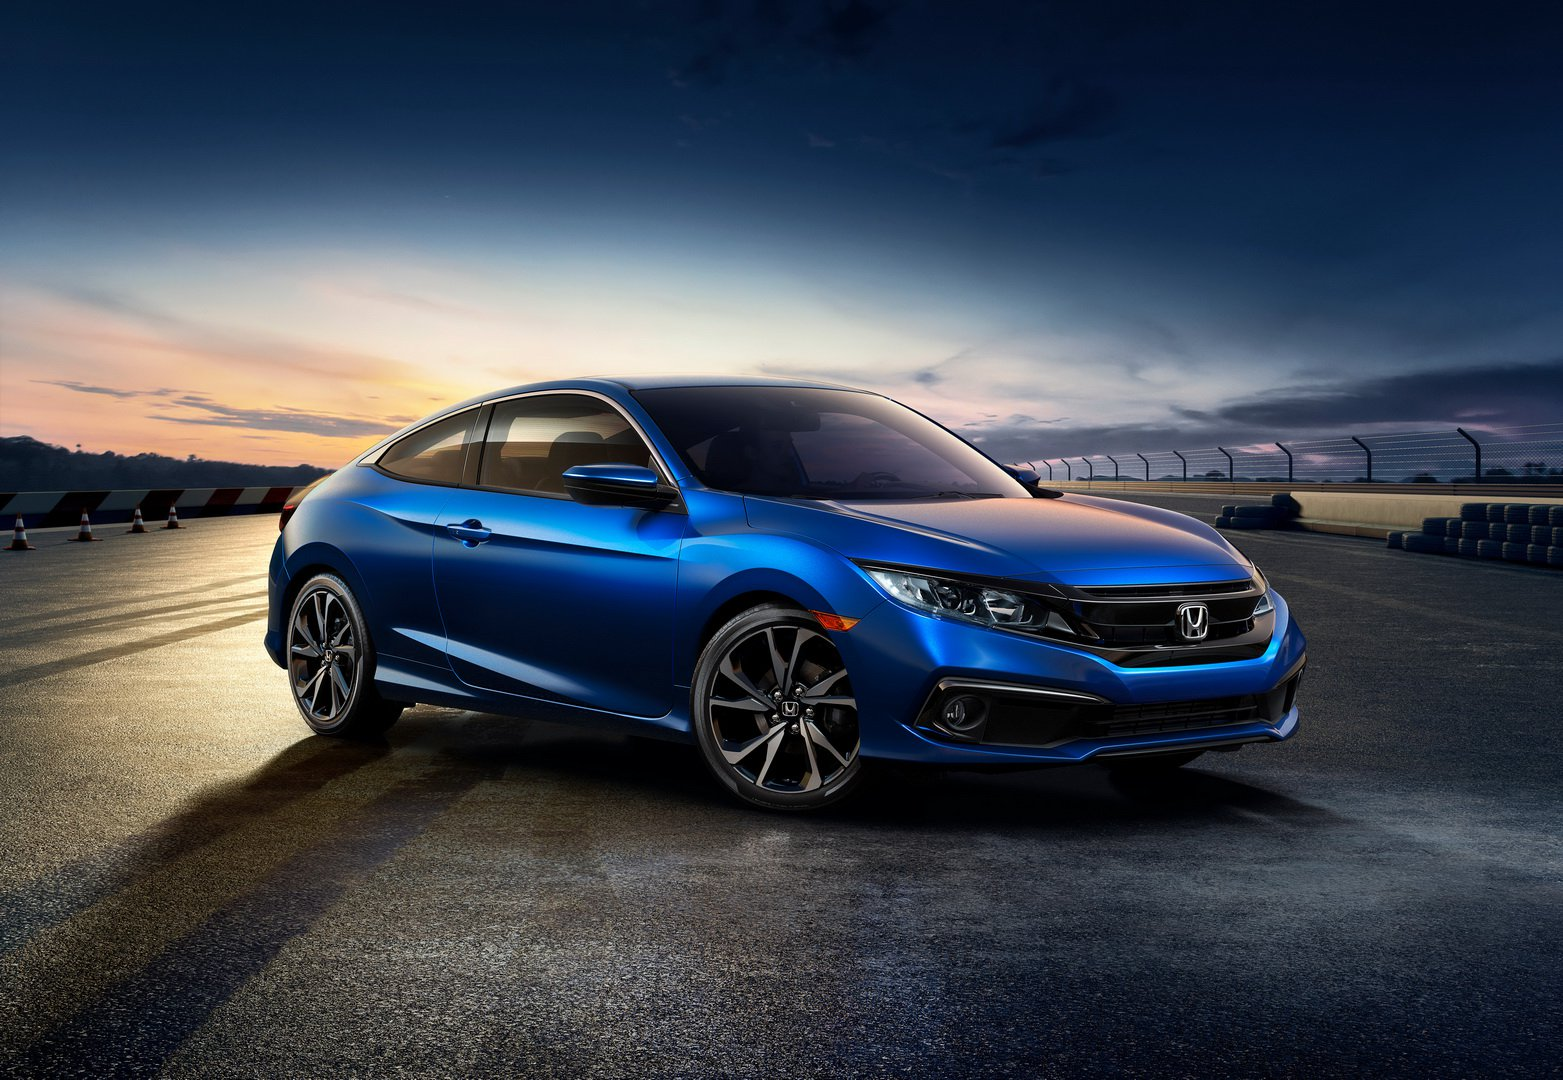 Honda Civic Gets Sport Trim For Coupe And Sedan